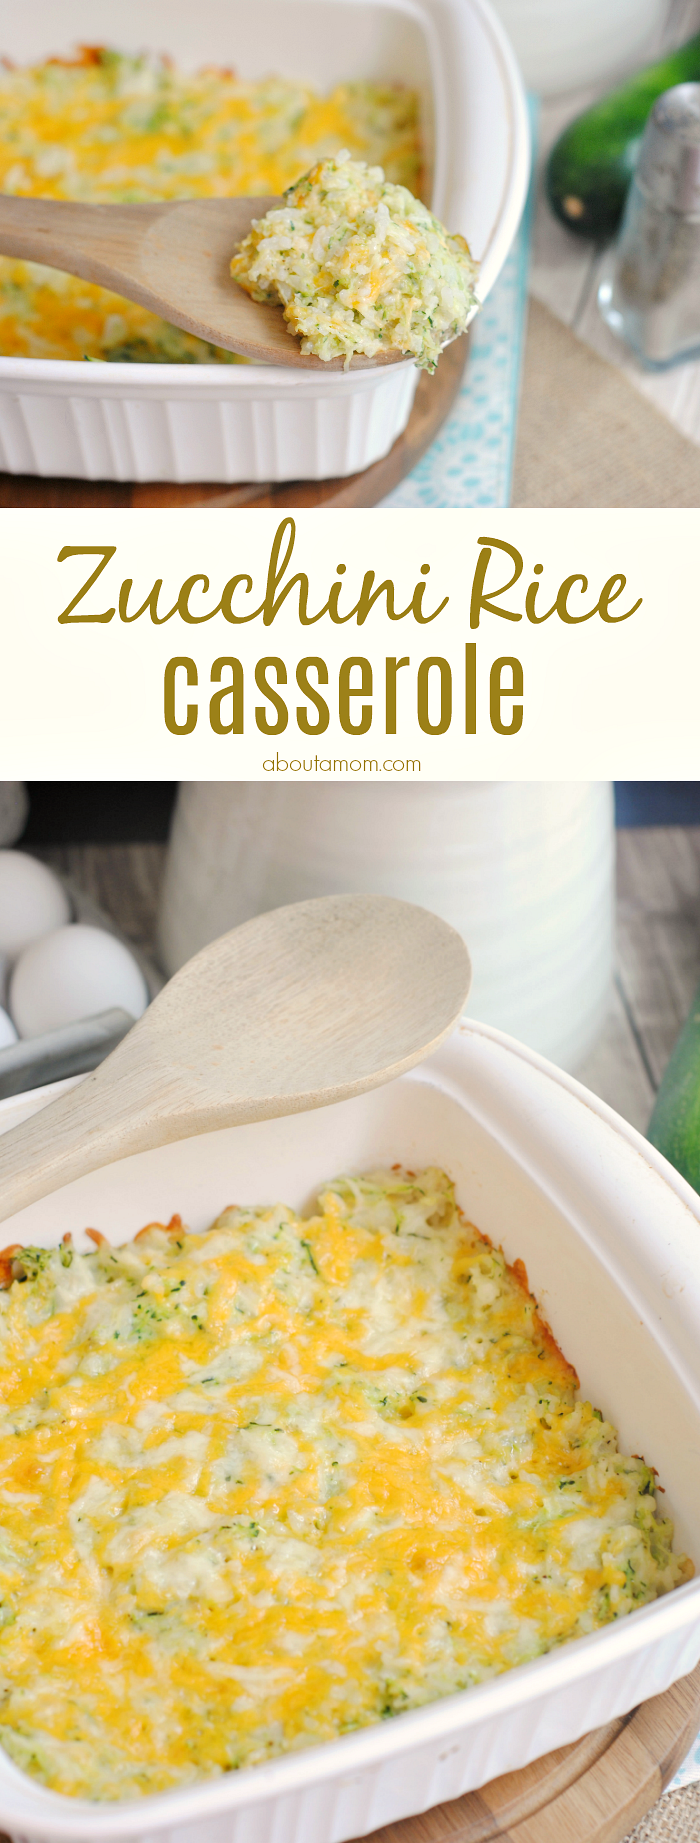 Perfect as a side dish or standalone vegetarian meal, this zucchini rice casserole recipe is cheesy, comforting and filling.